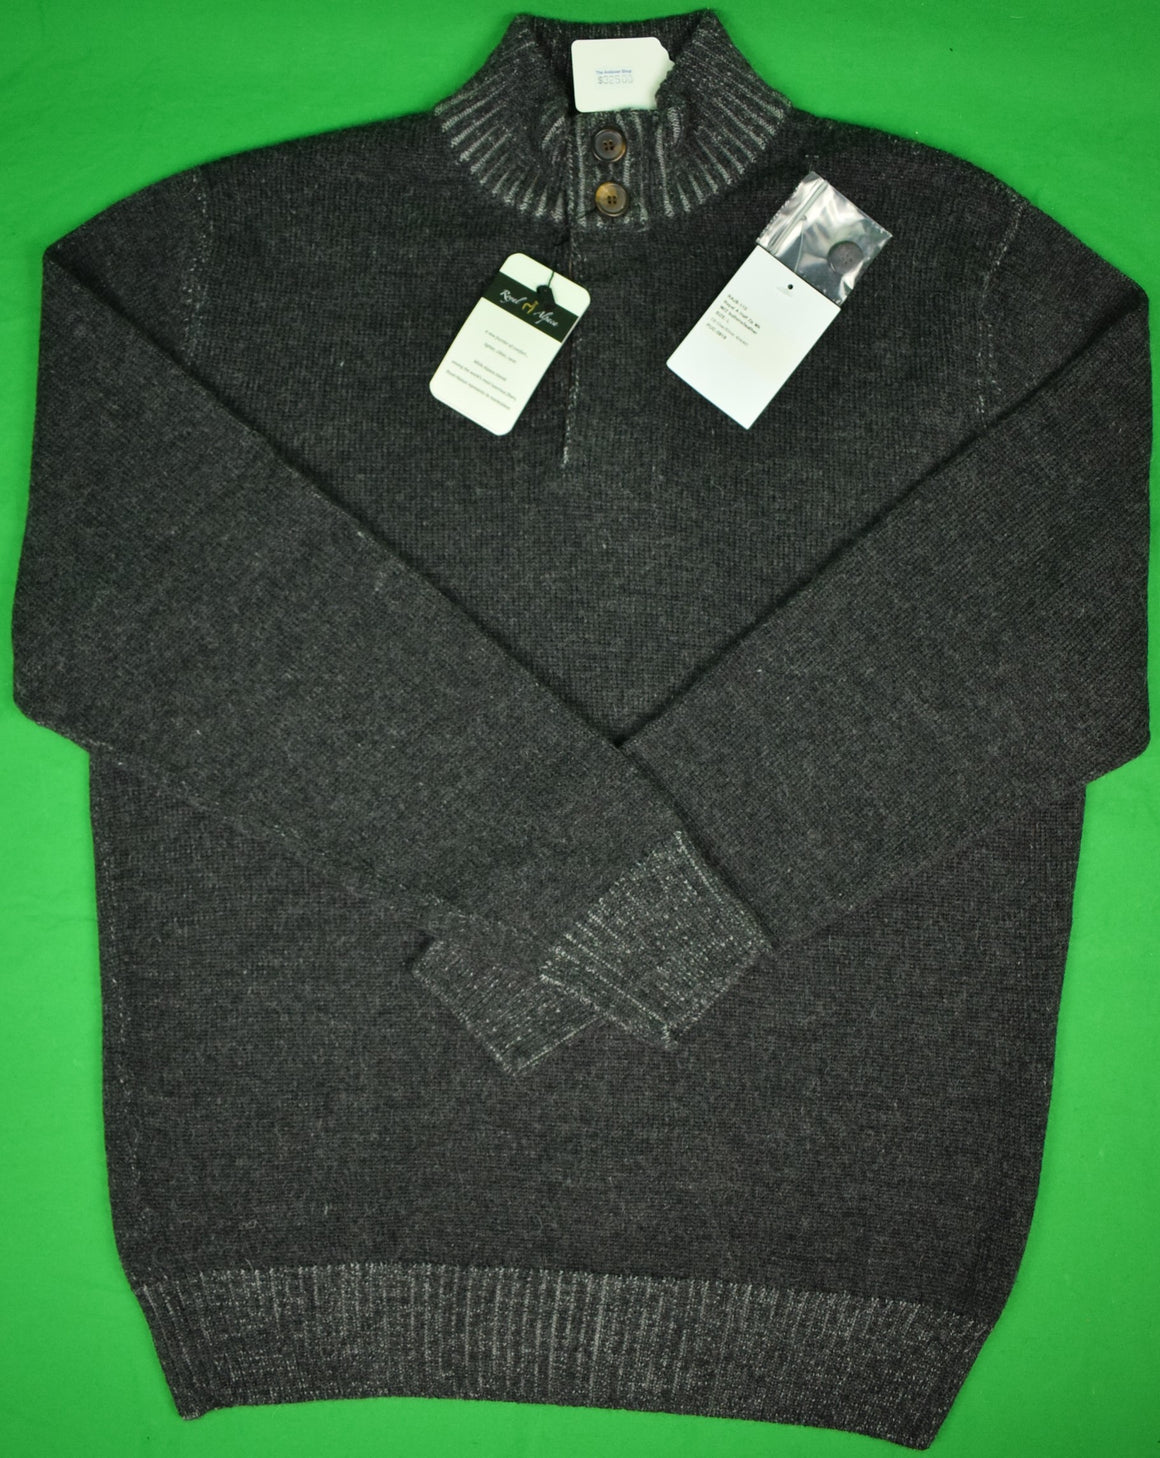 The Andover Shop Royal Alpaca Char/ Silver Grey Pullover Sweater Sz: L (New w/ Tags!)